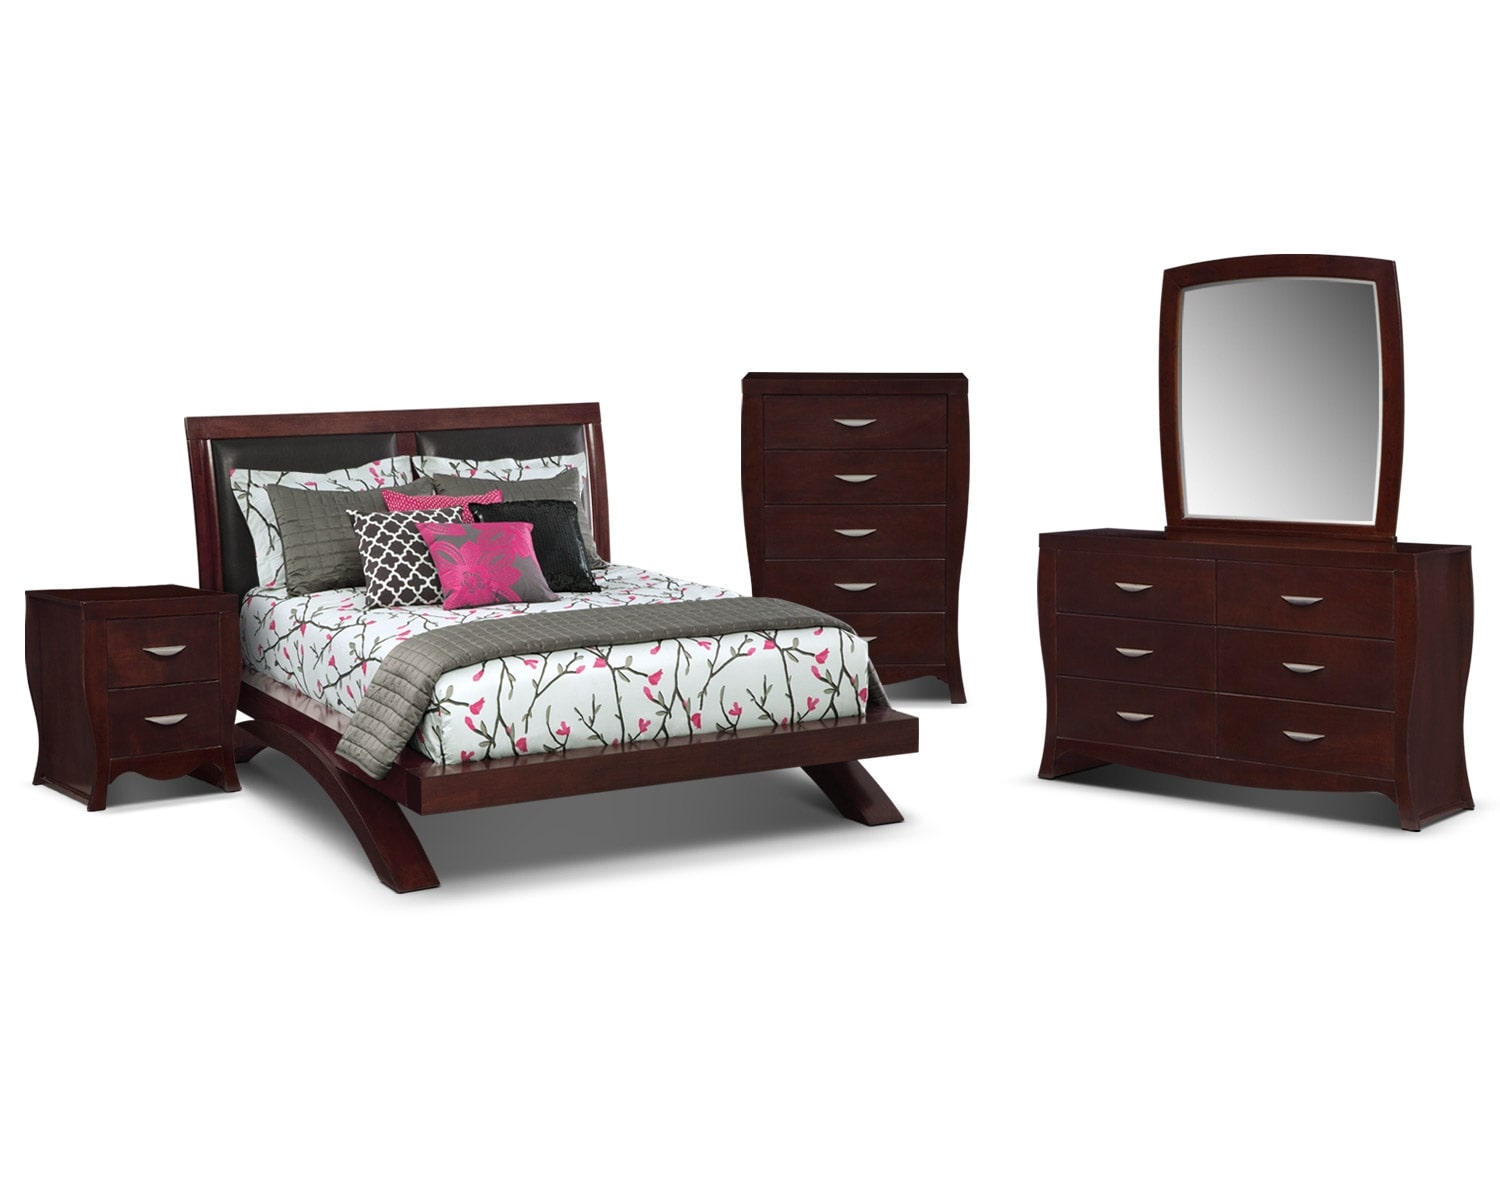 The Jaden Upholstered Arch Bedroom Collection - Merlot